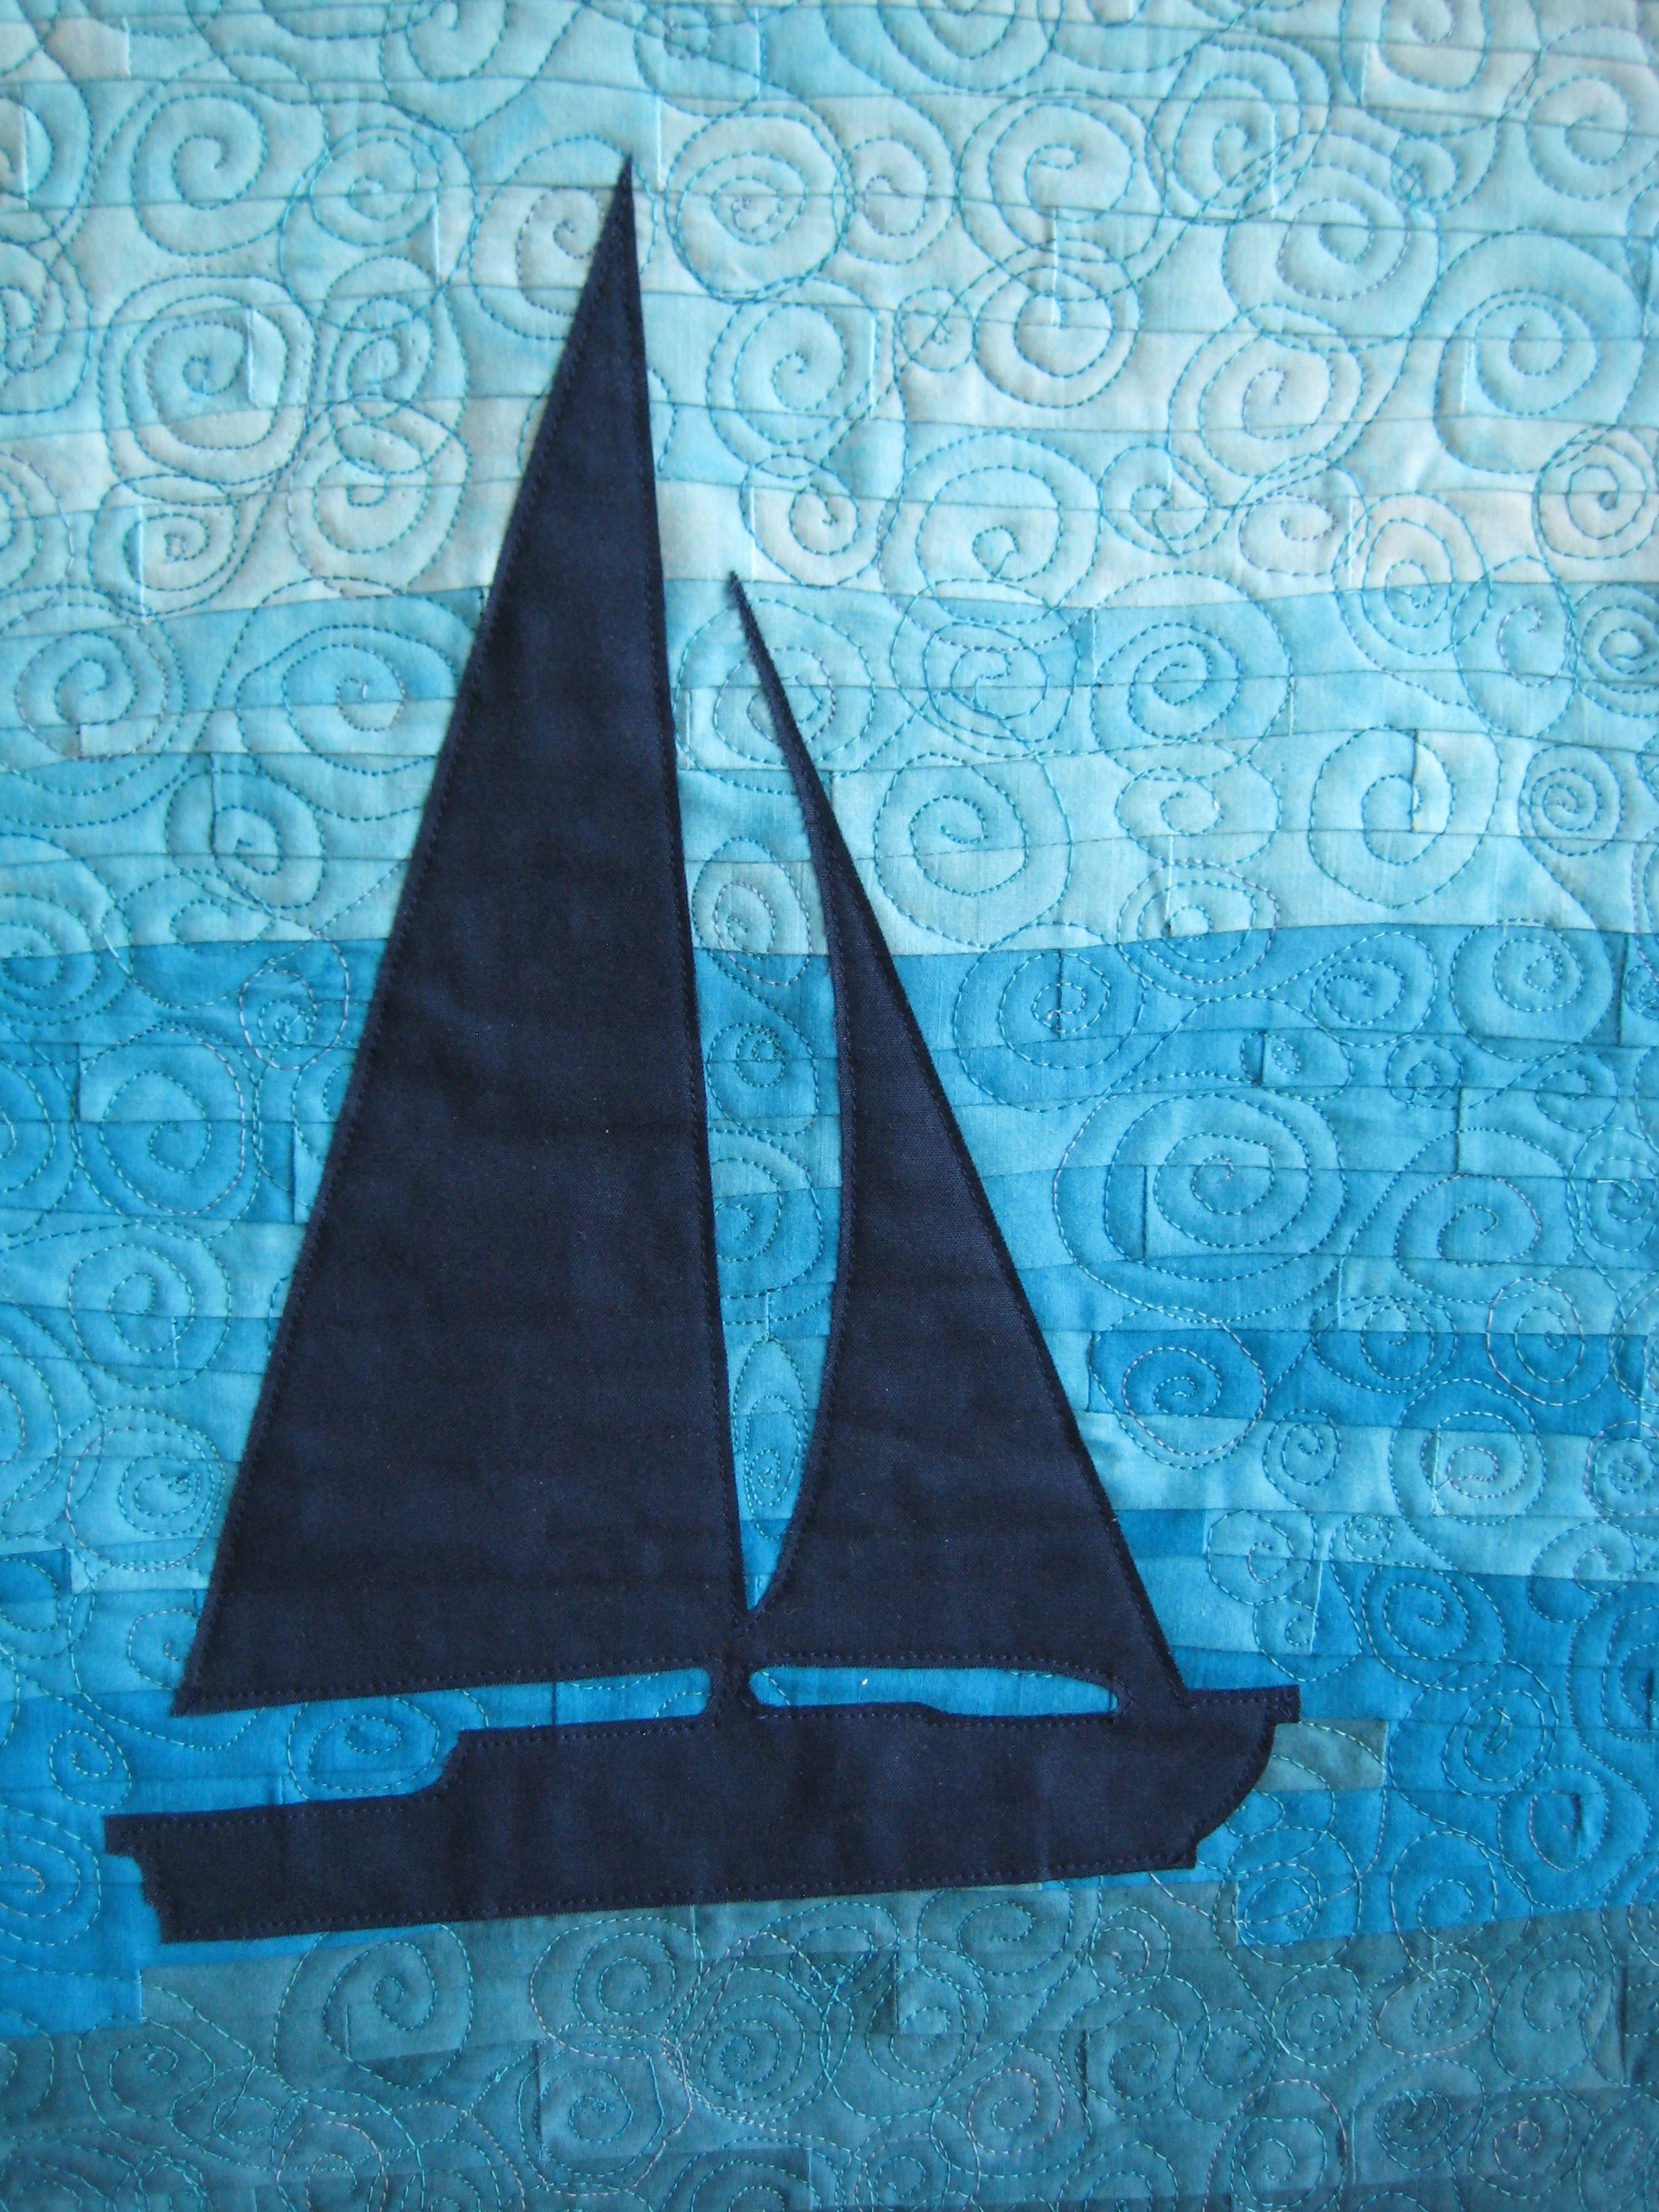 applique sailboat